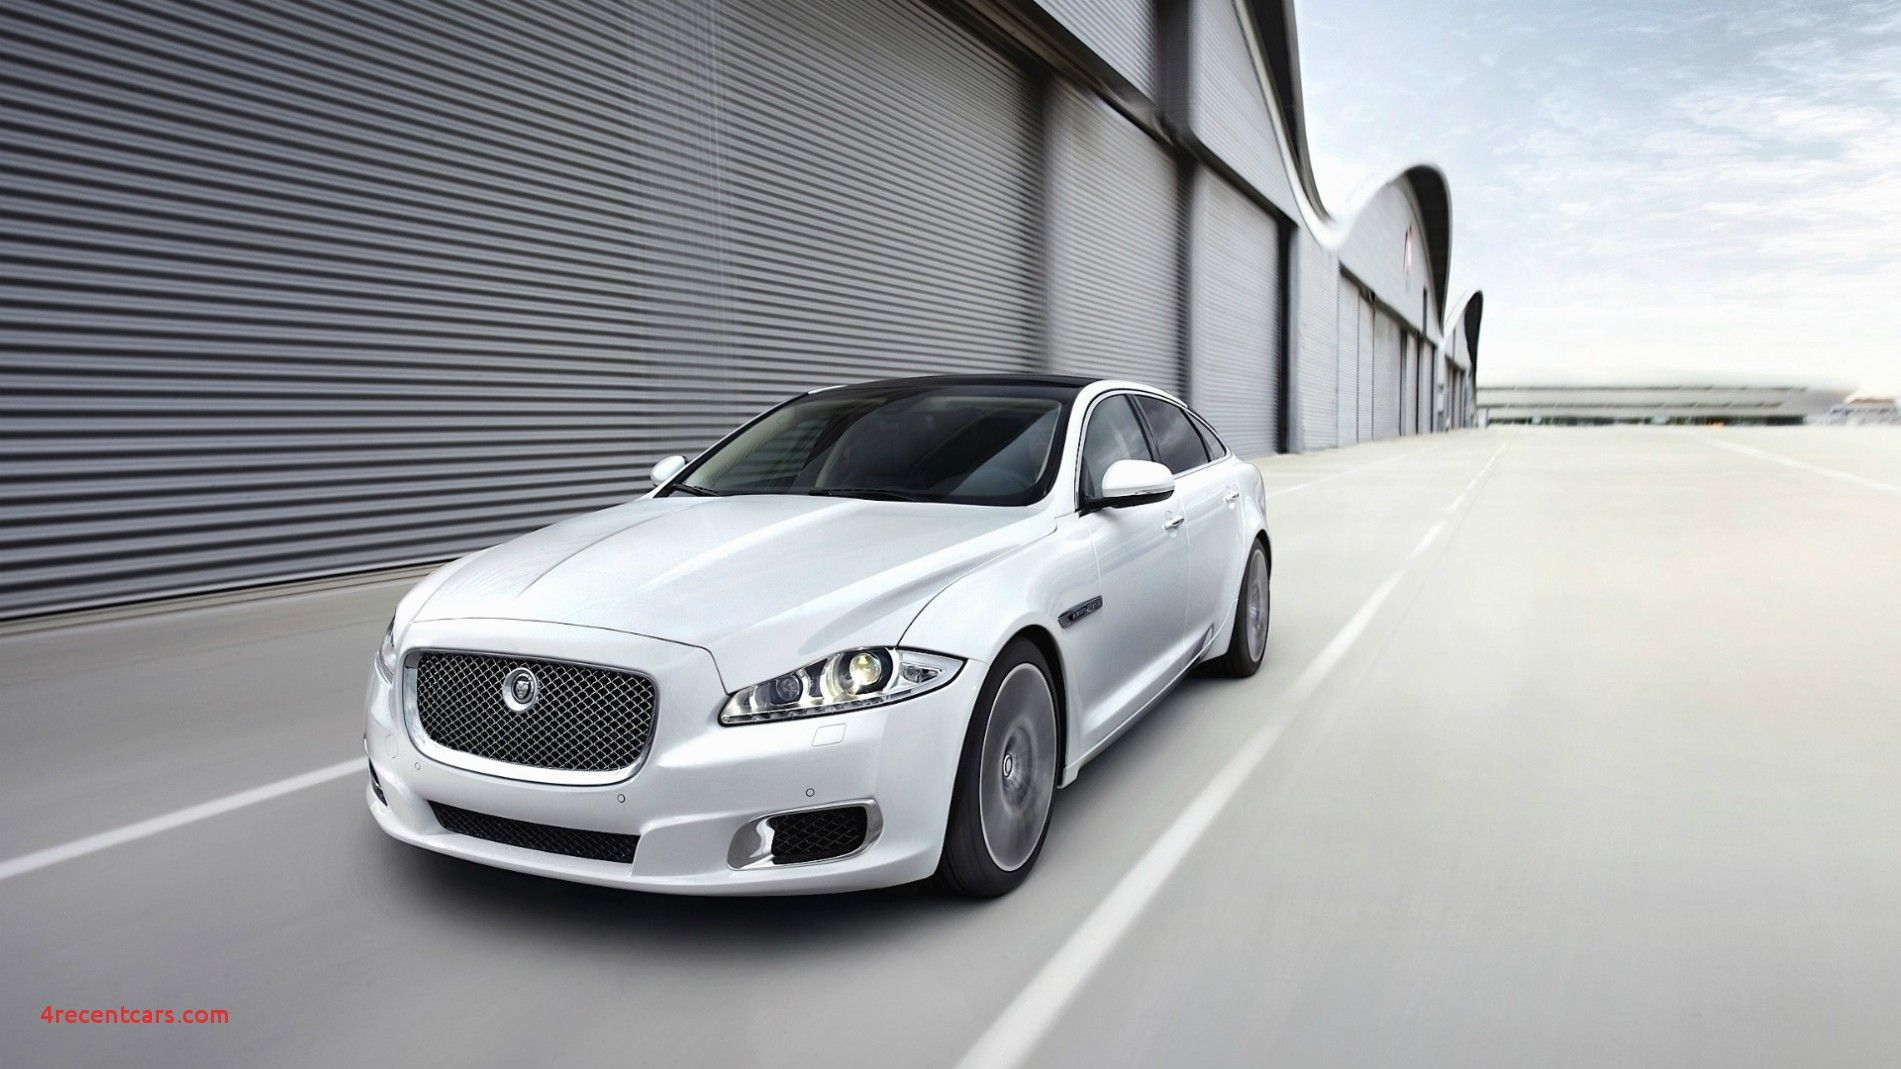 56 Best Free Jaguar Car Hd Wallpapers Wallpaperaccess